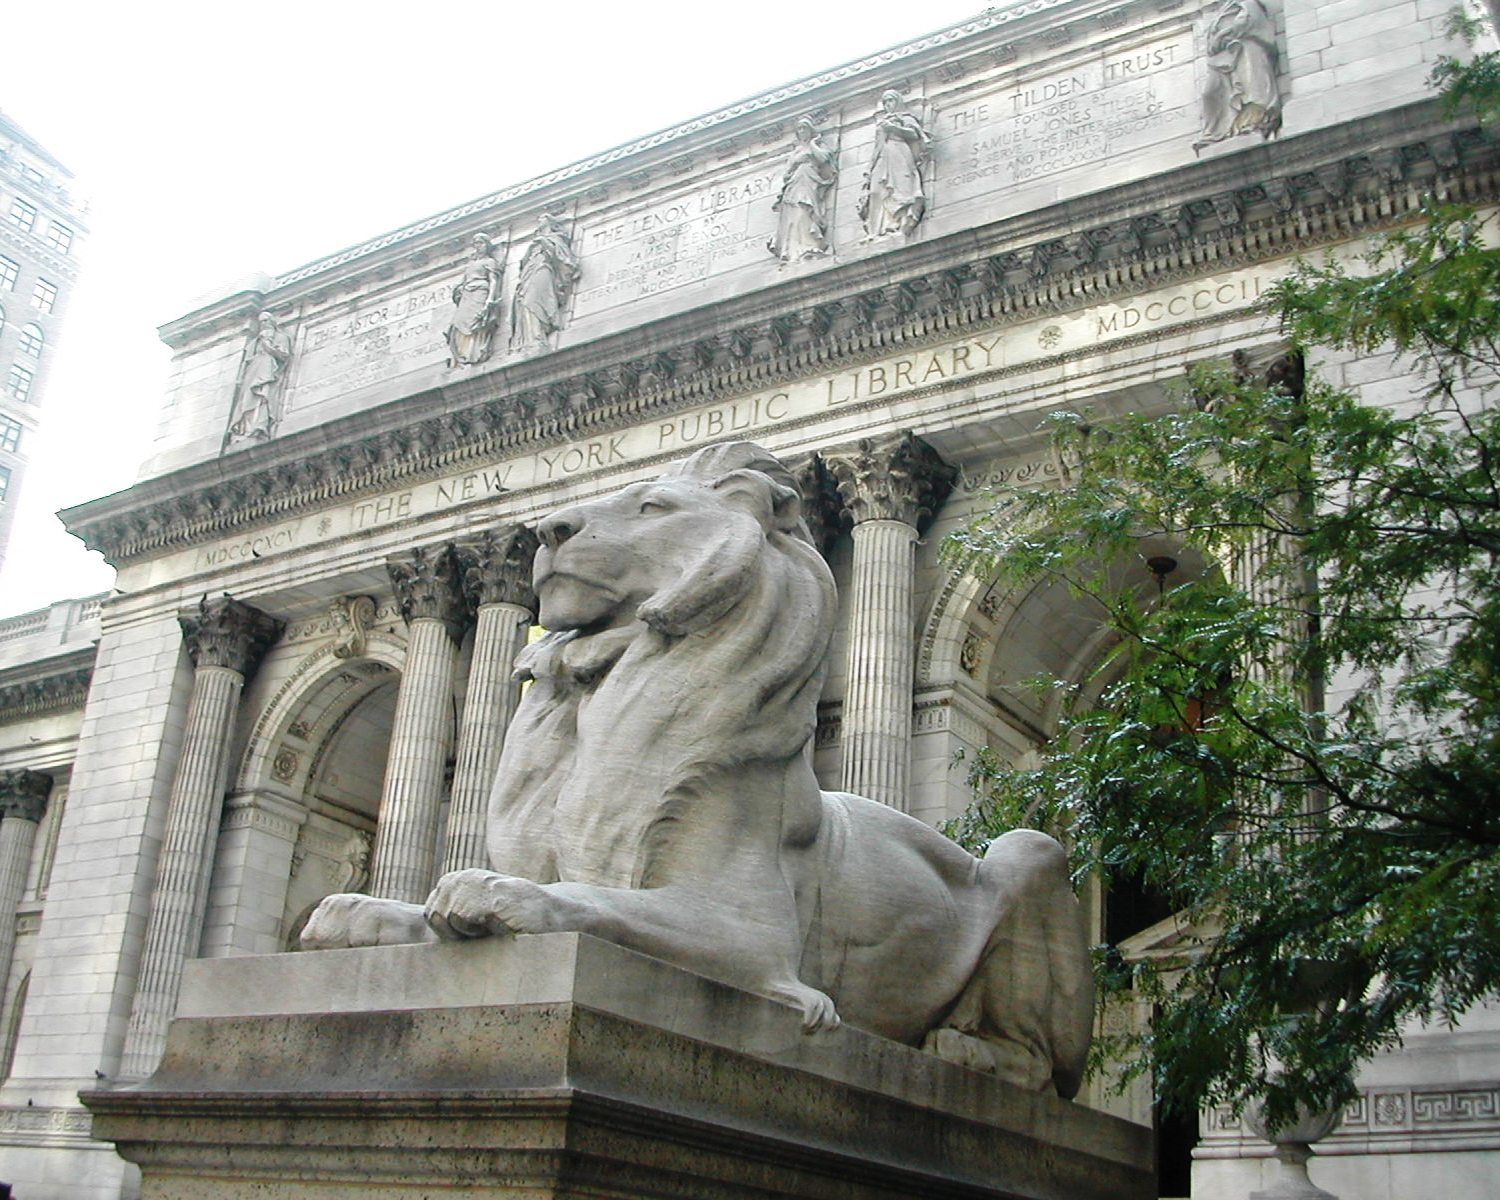 New York Public Library (CC)